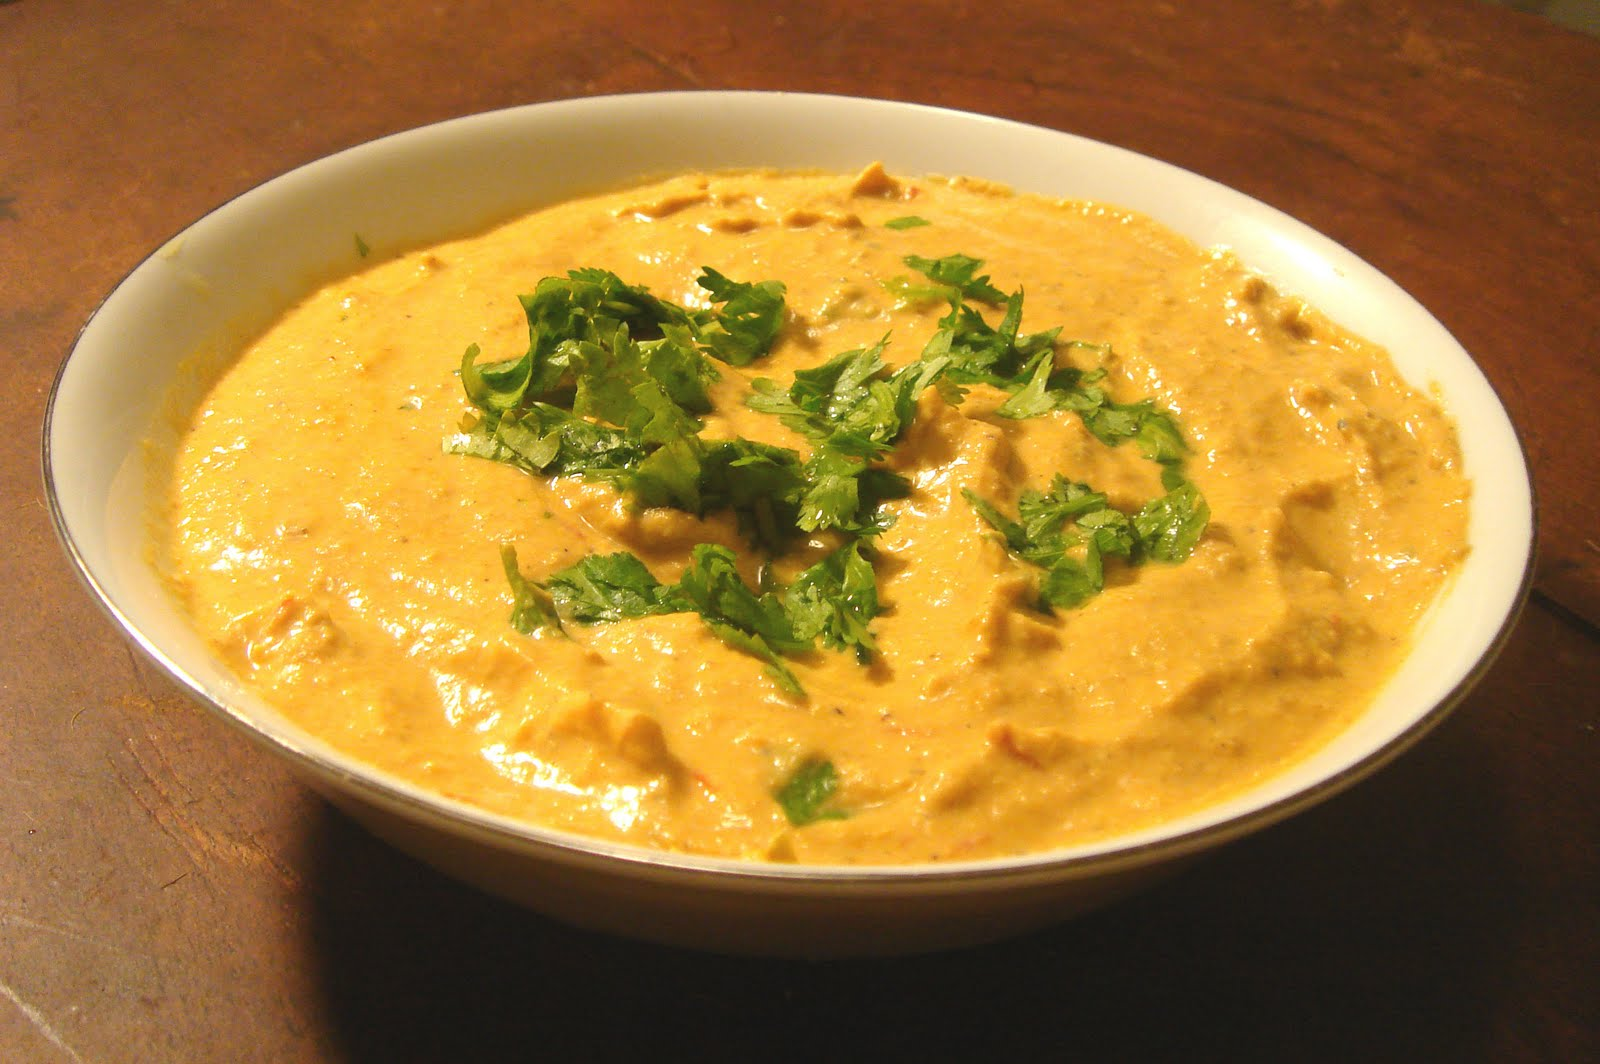 Baingan Bharta (Roasted Eggplant Curry) Dip